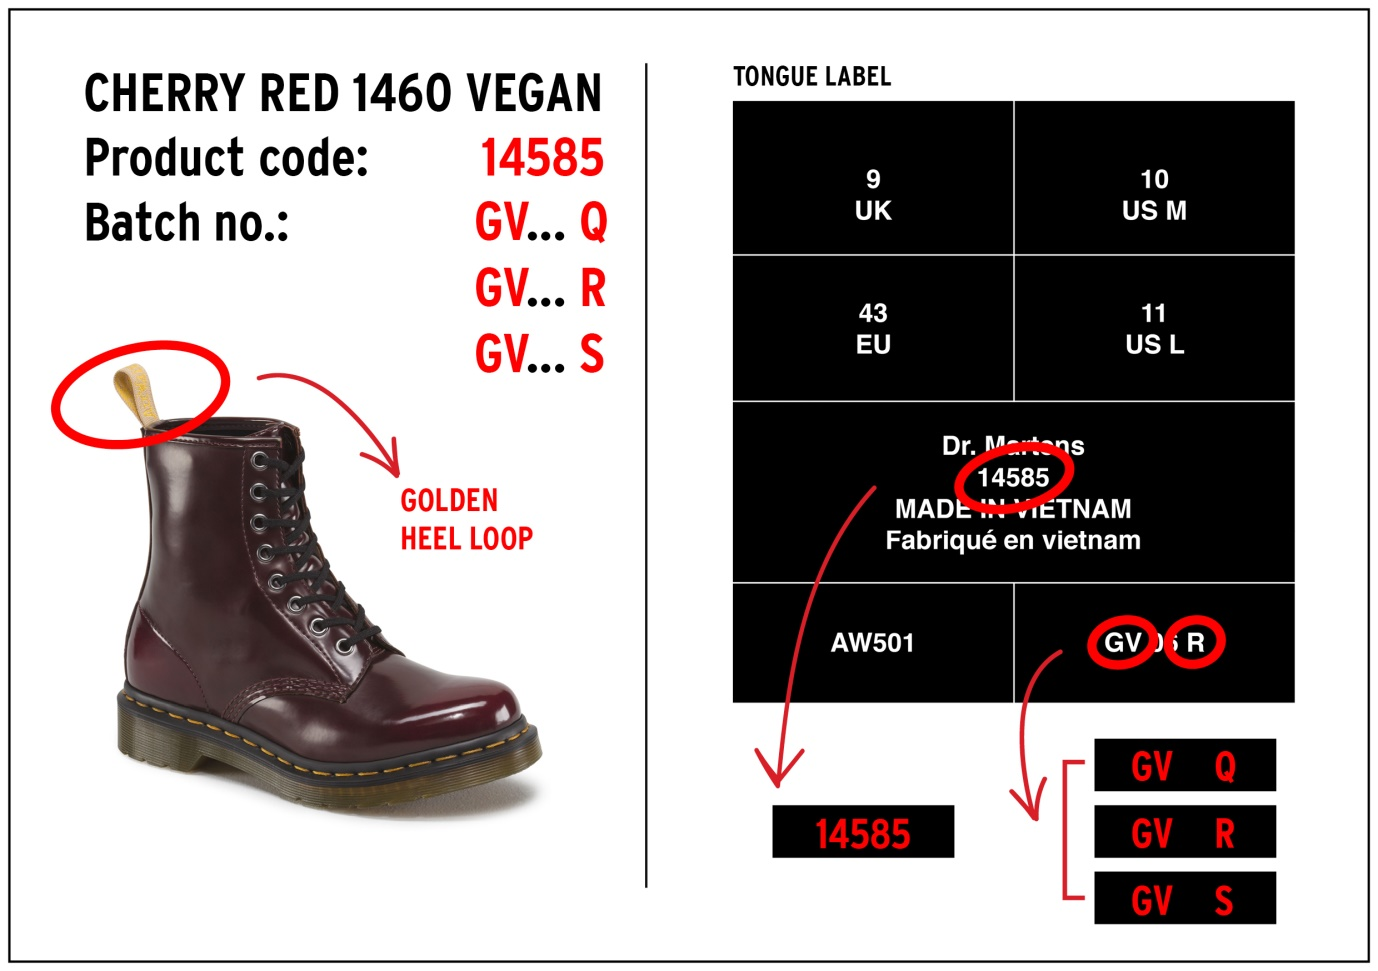 406670ebed33 Dr. Martens Vegan Boots Recalled by Airwair Due to Chemical Exposure ...